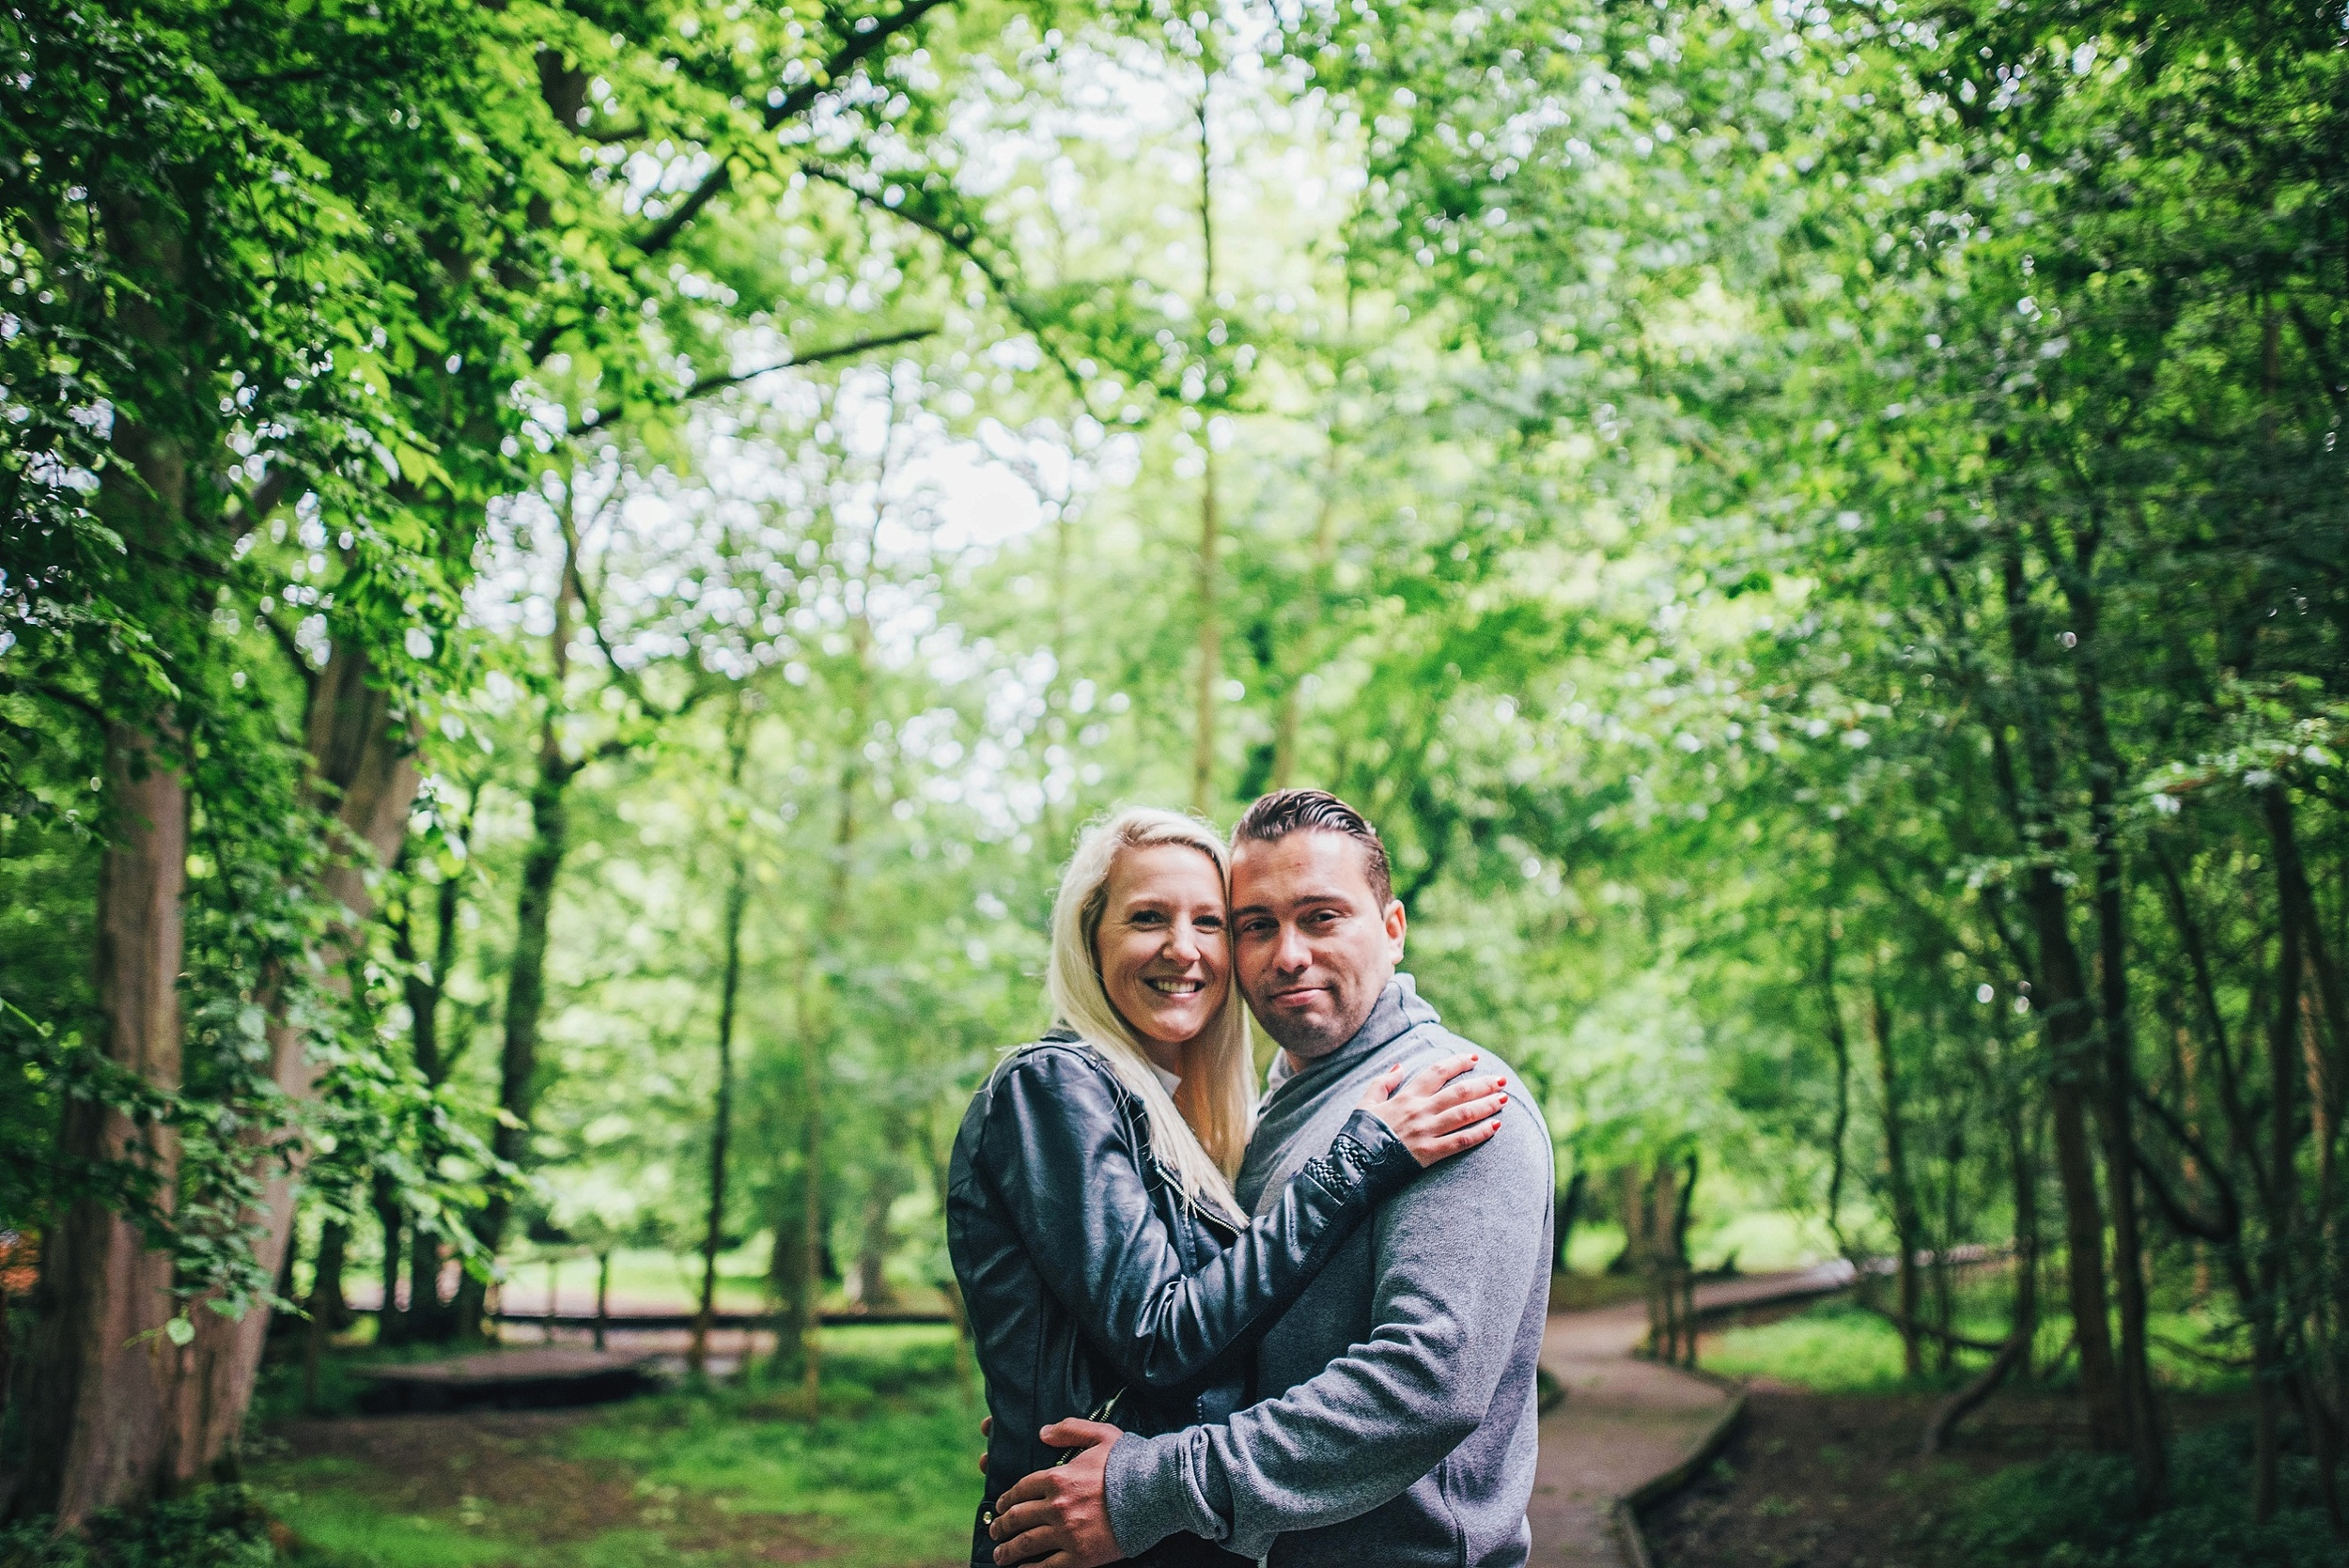 Love Shoot Couples Portraits Hatfield Forest Essex UK Documentary Portrait and Lifestyle Photographer